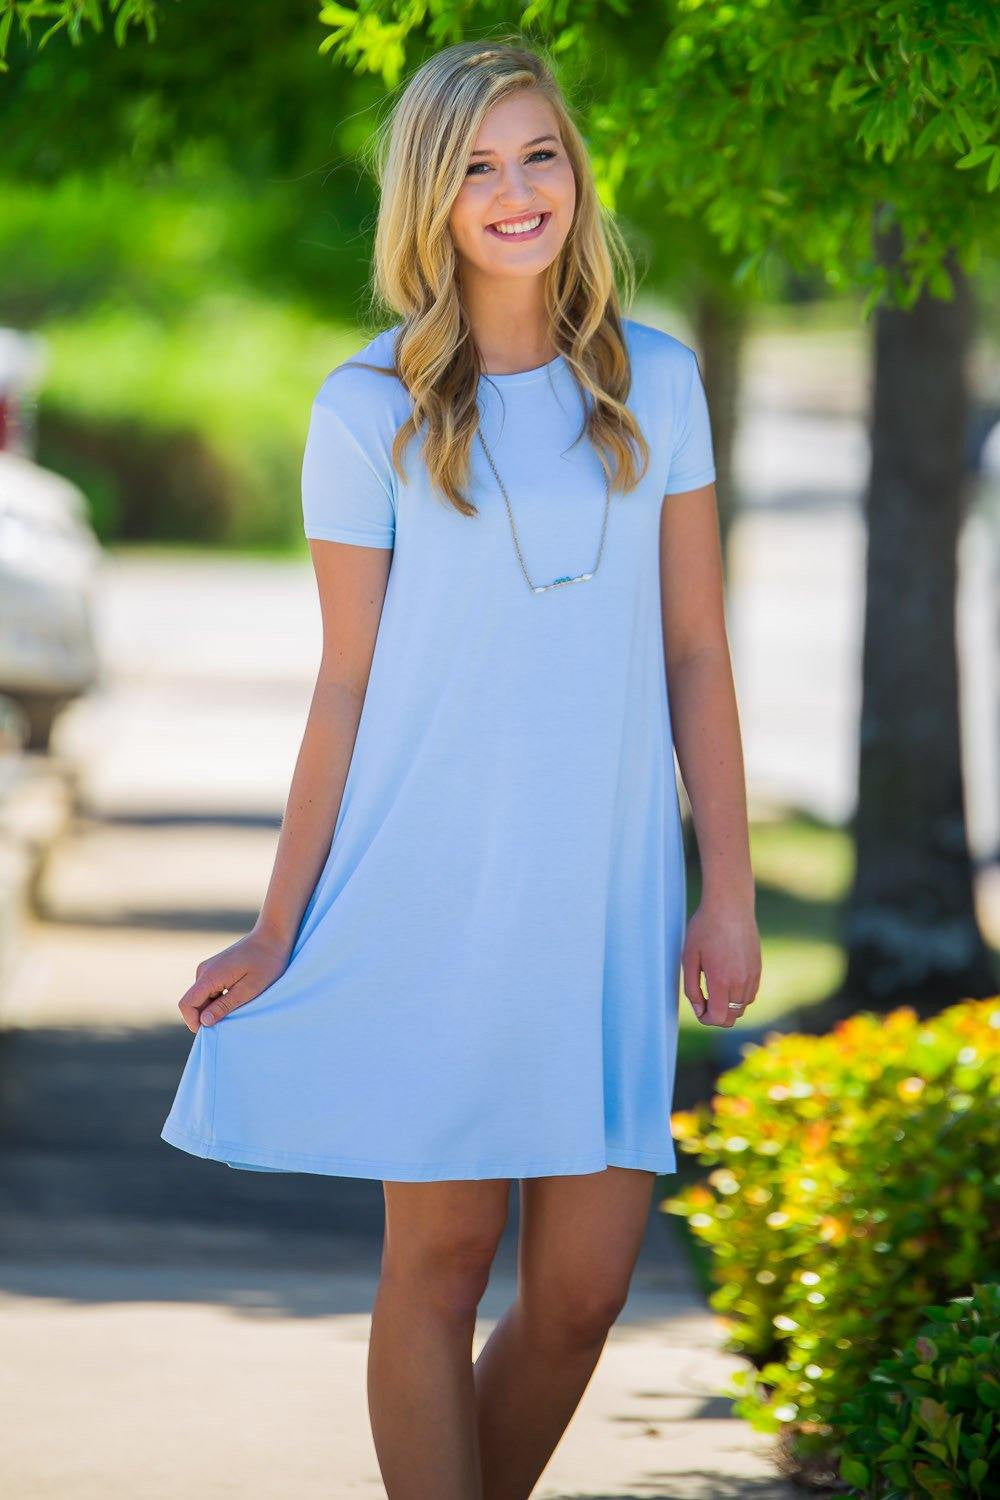 Piko Short Sleeve Swing Dress-Light Blue - Piko Clothing - 1